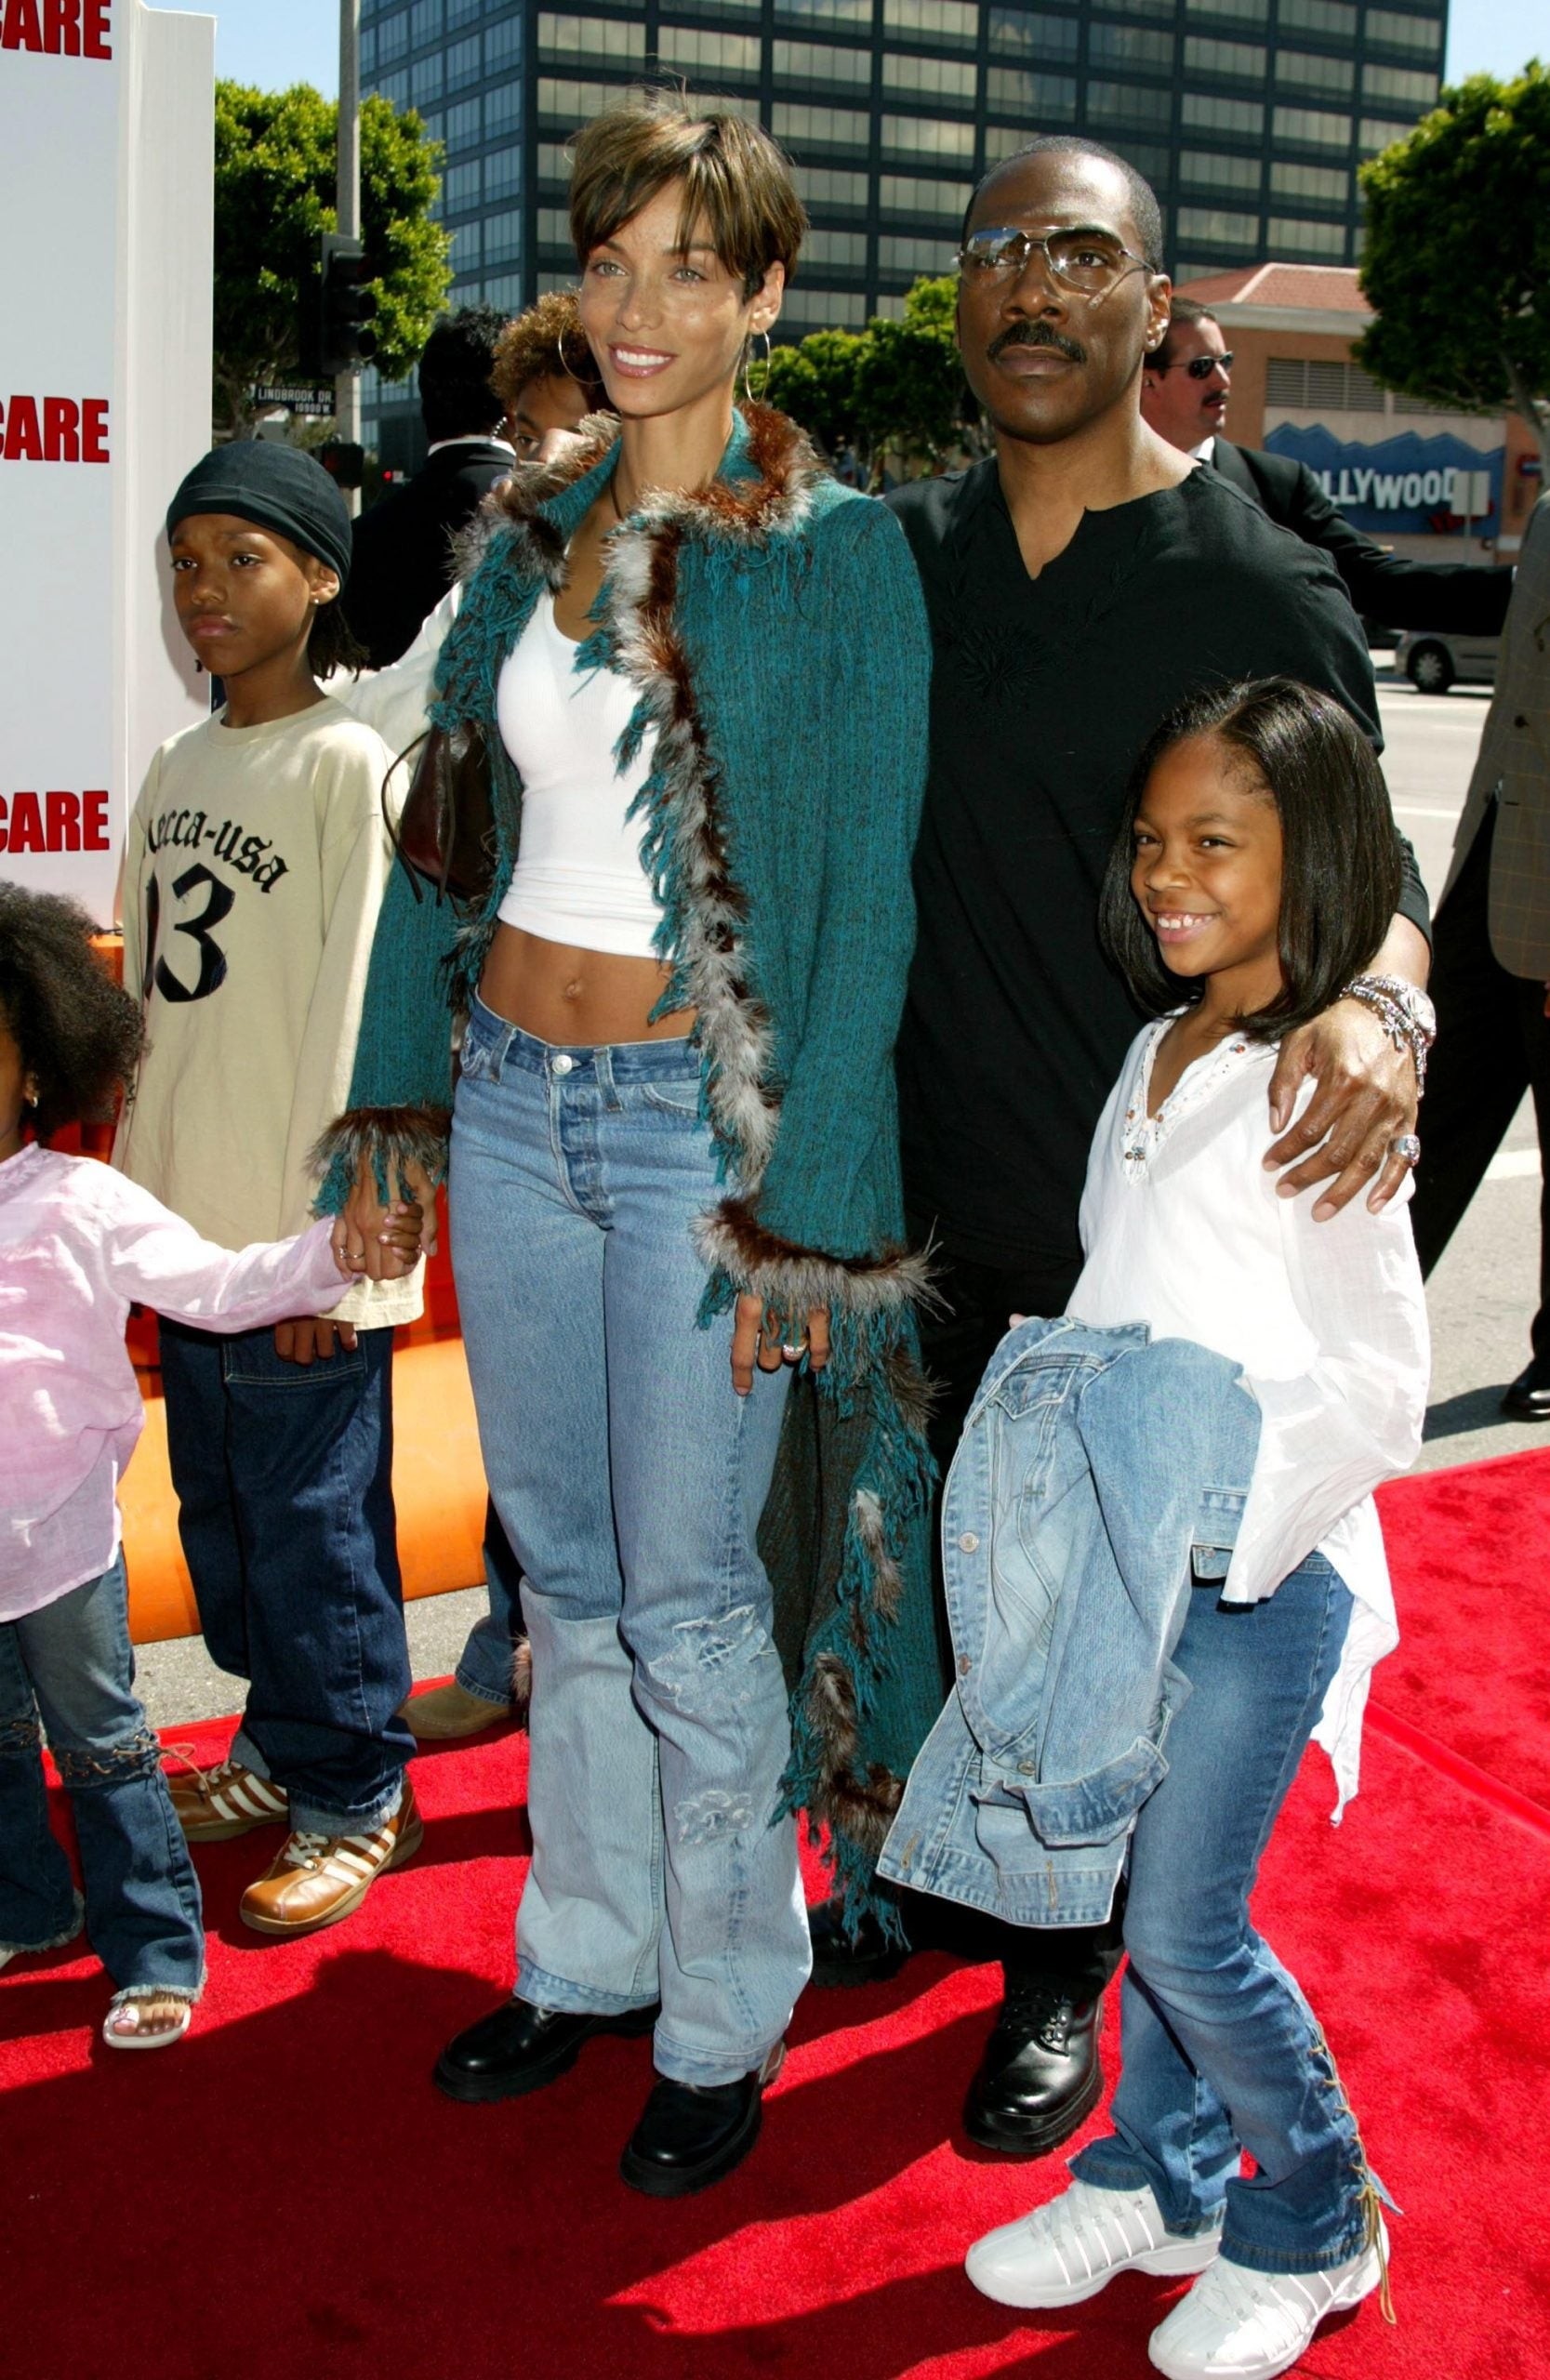 A Family Affair Eddie Murphy And His Kids Through The Years Essence He is shown holding izzy, 2, his daughter with butcher, while she cradles baby max. a family affair eddie murphy and his